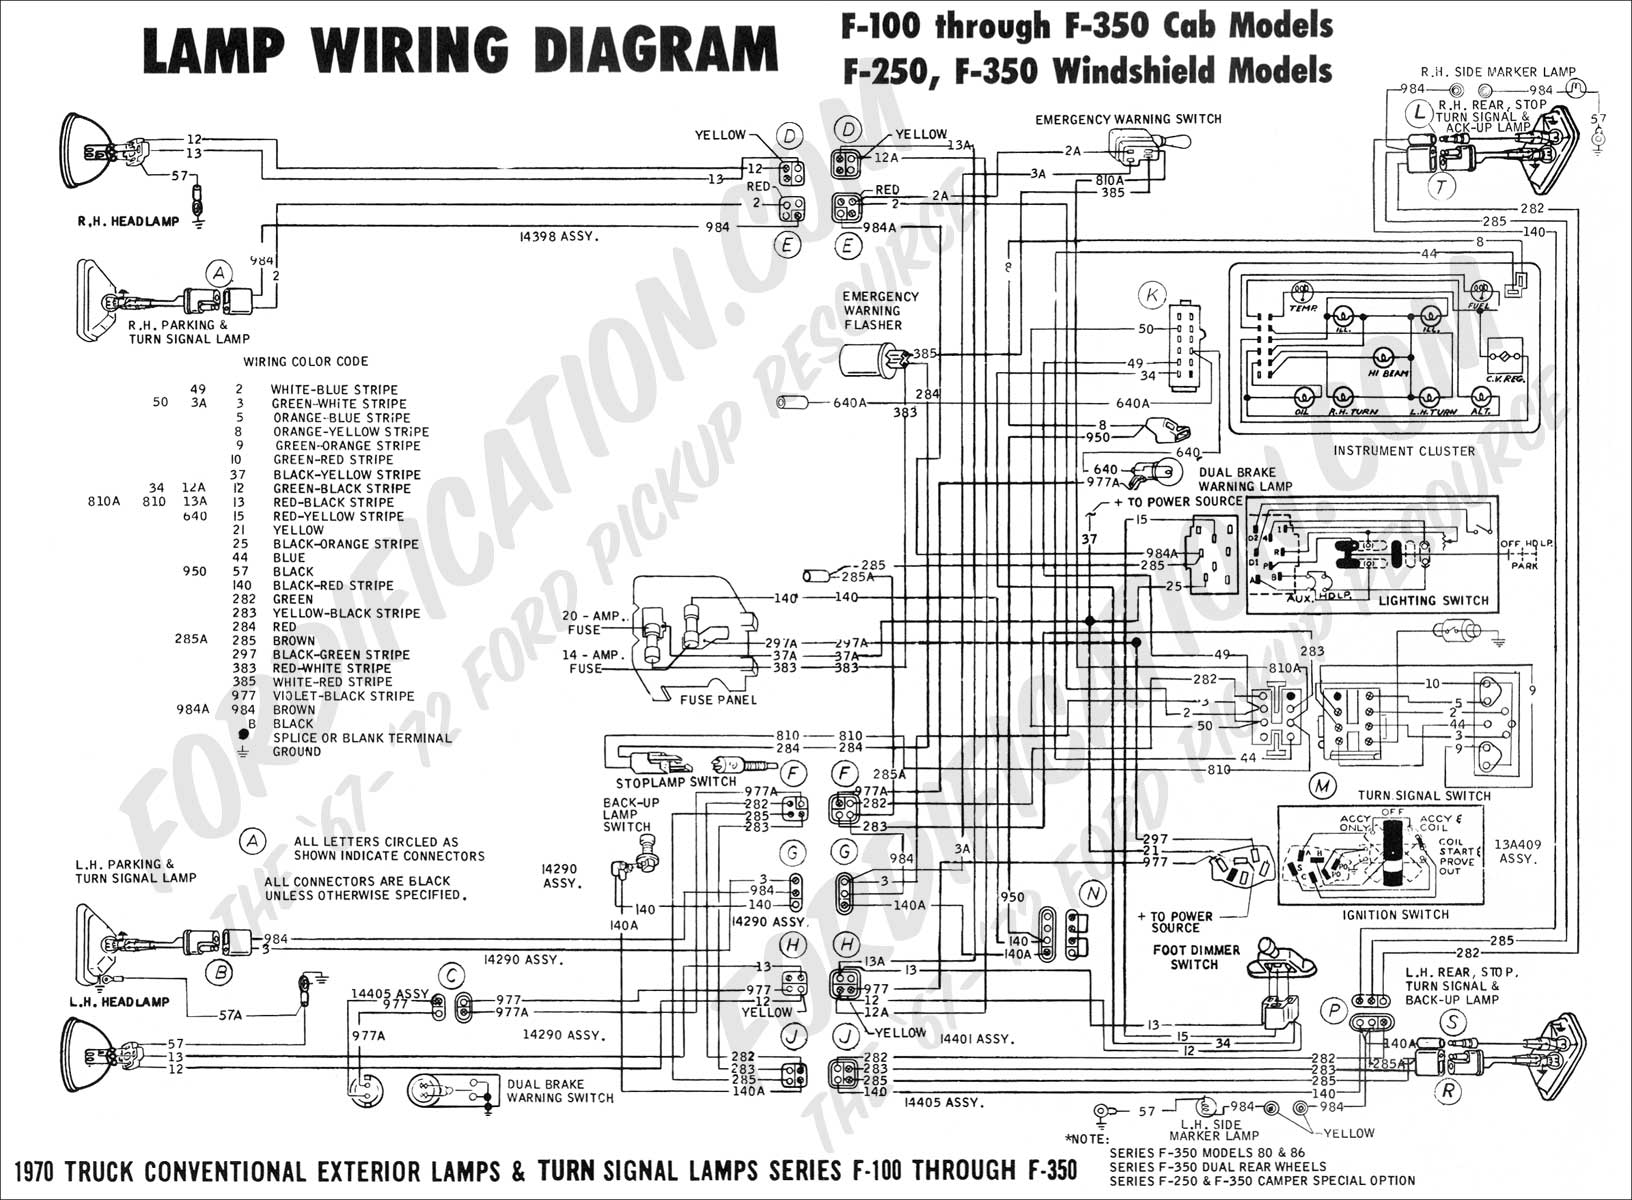 87 f250 wiring diagram wiring diagram data oreo Motor Starter Wiring Diagram 1995 ford f 350 wiring diagram wiring diagrams hubs e300 wiring diagram 87 f250 wiring diagram